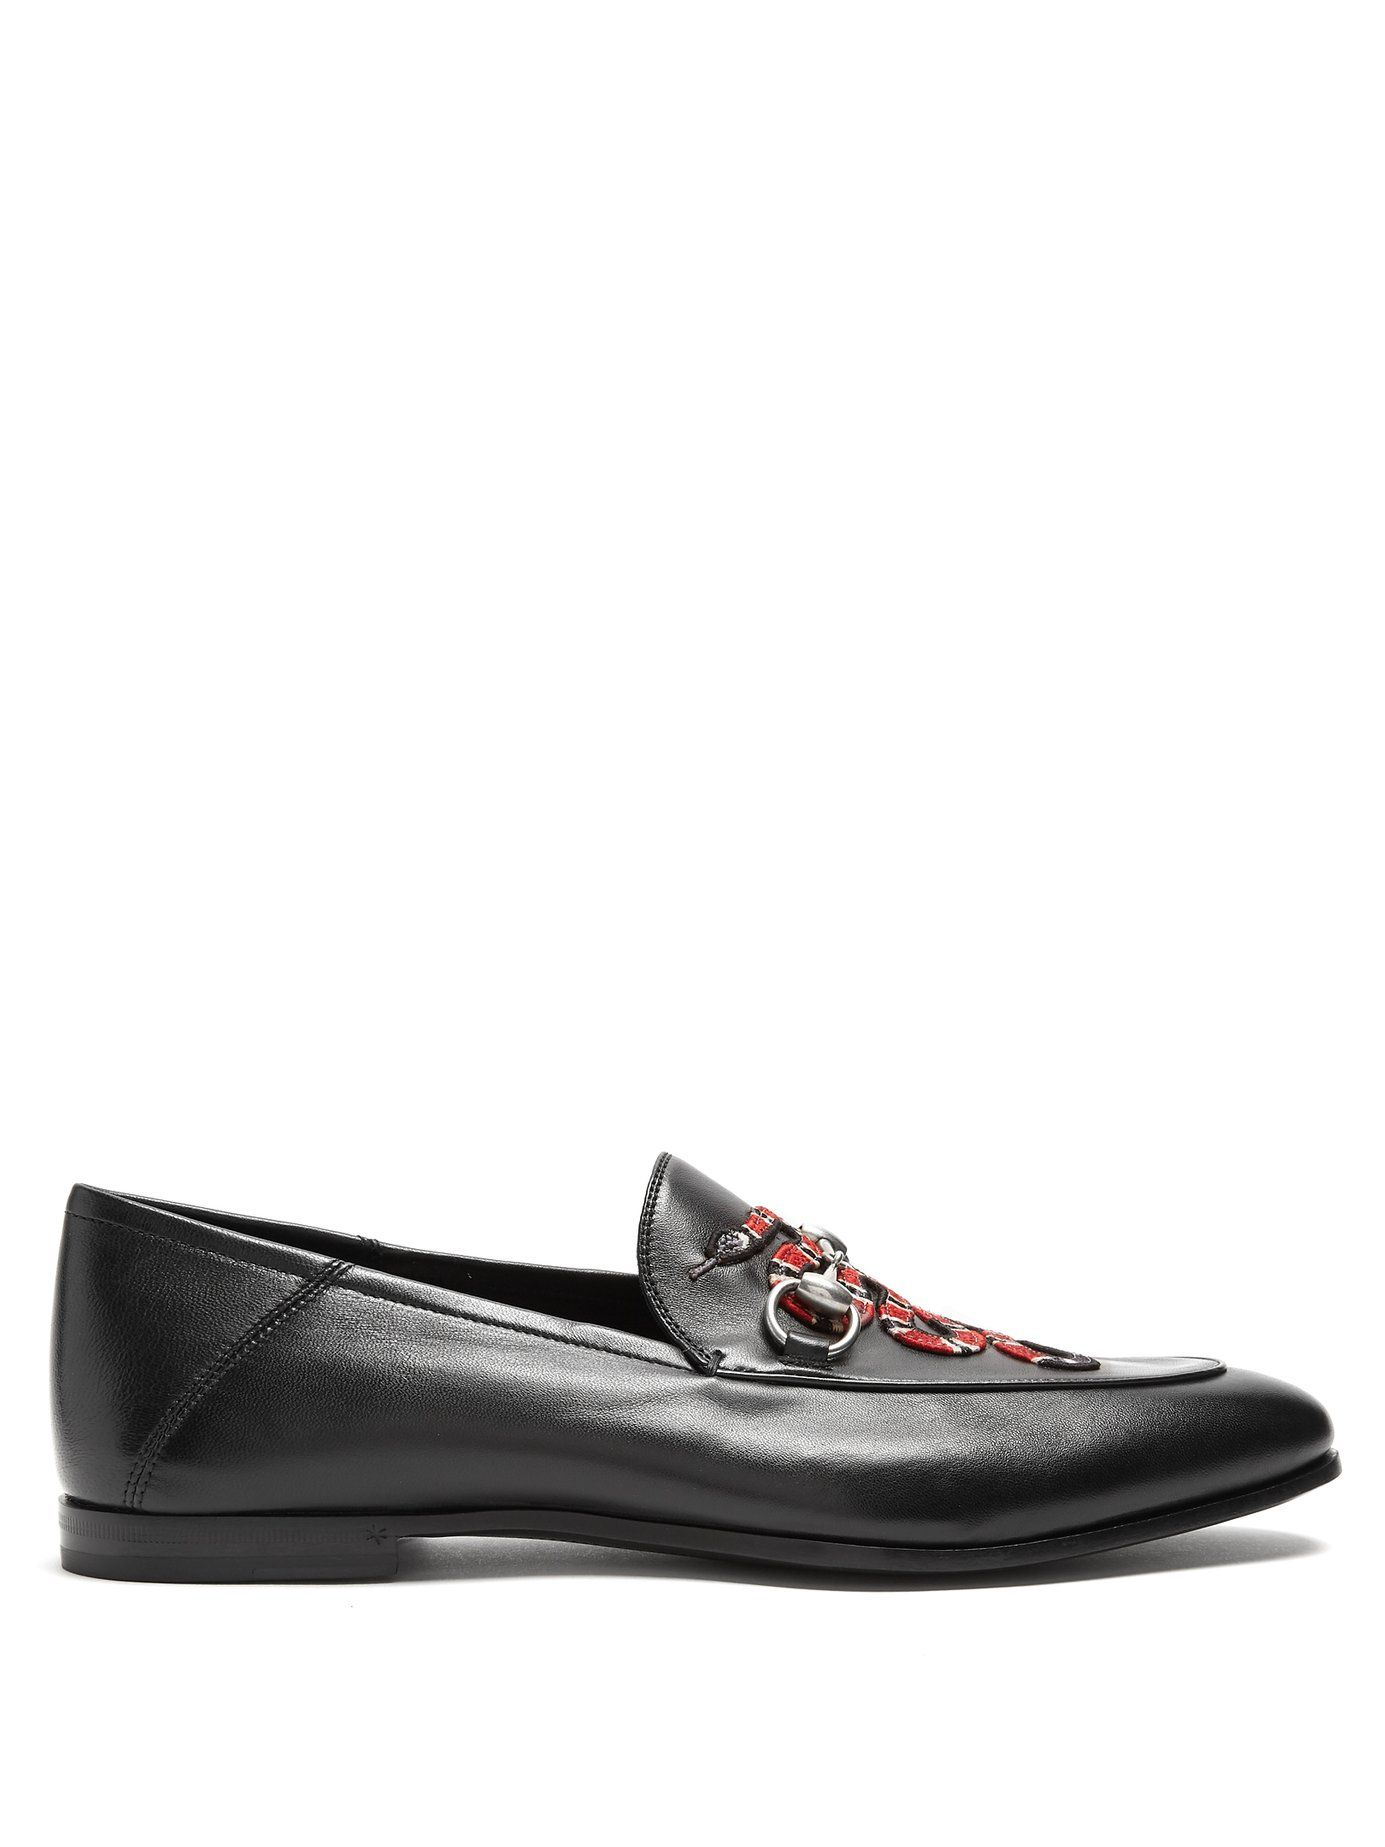 Discount Gucci Black Brixton Leather Loafers for Women Online Sale